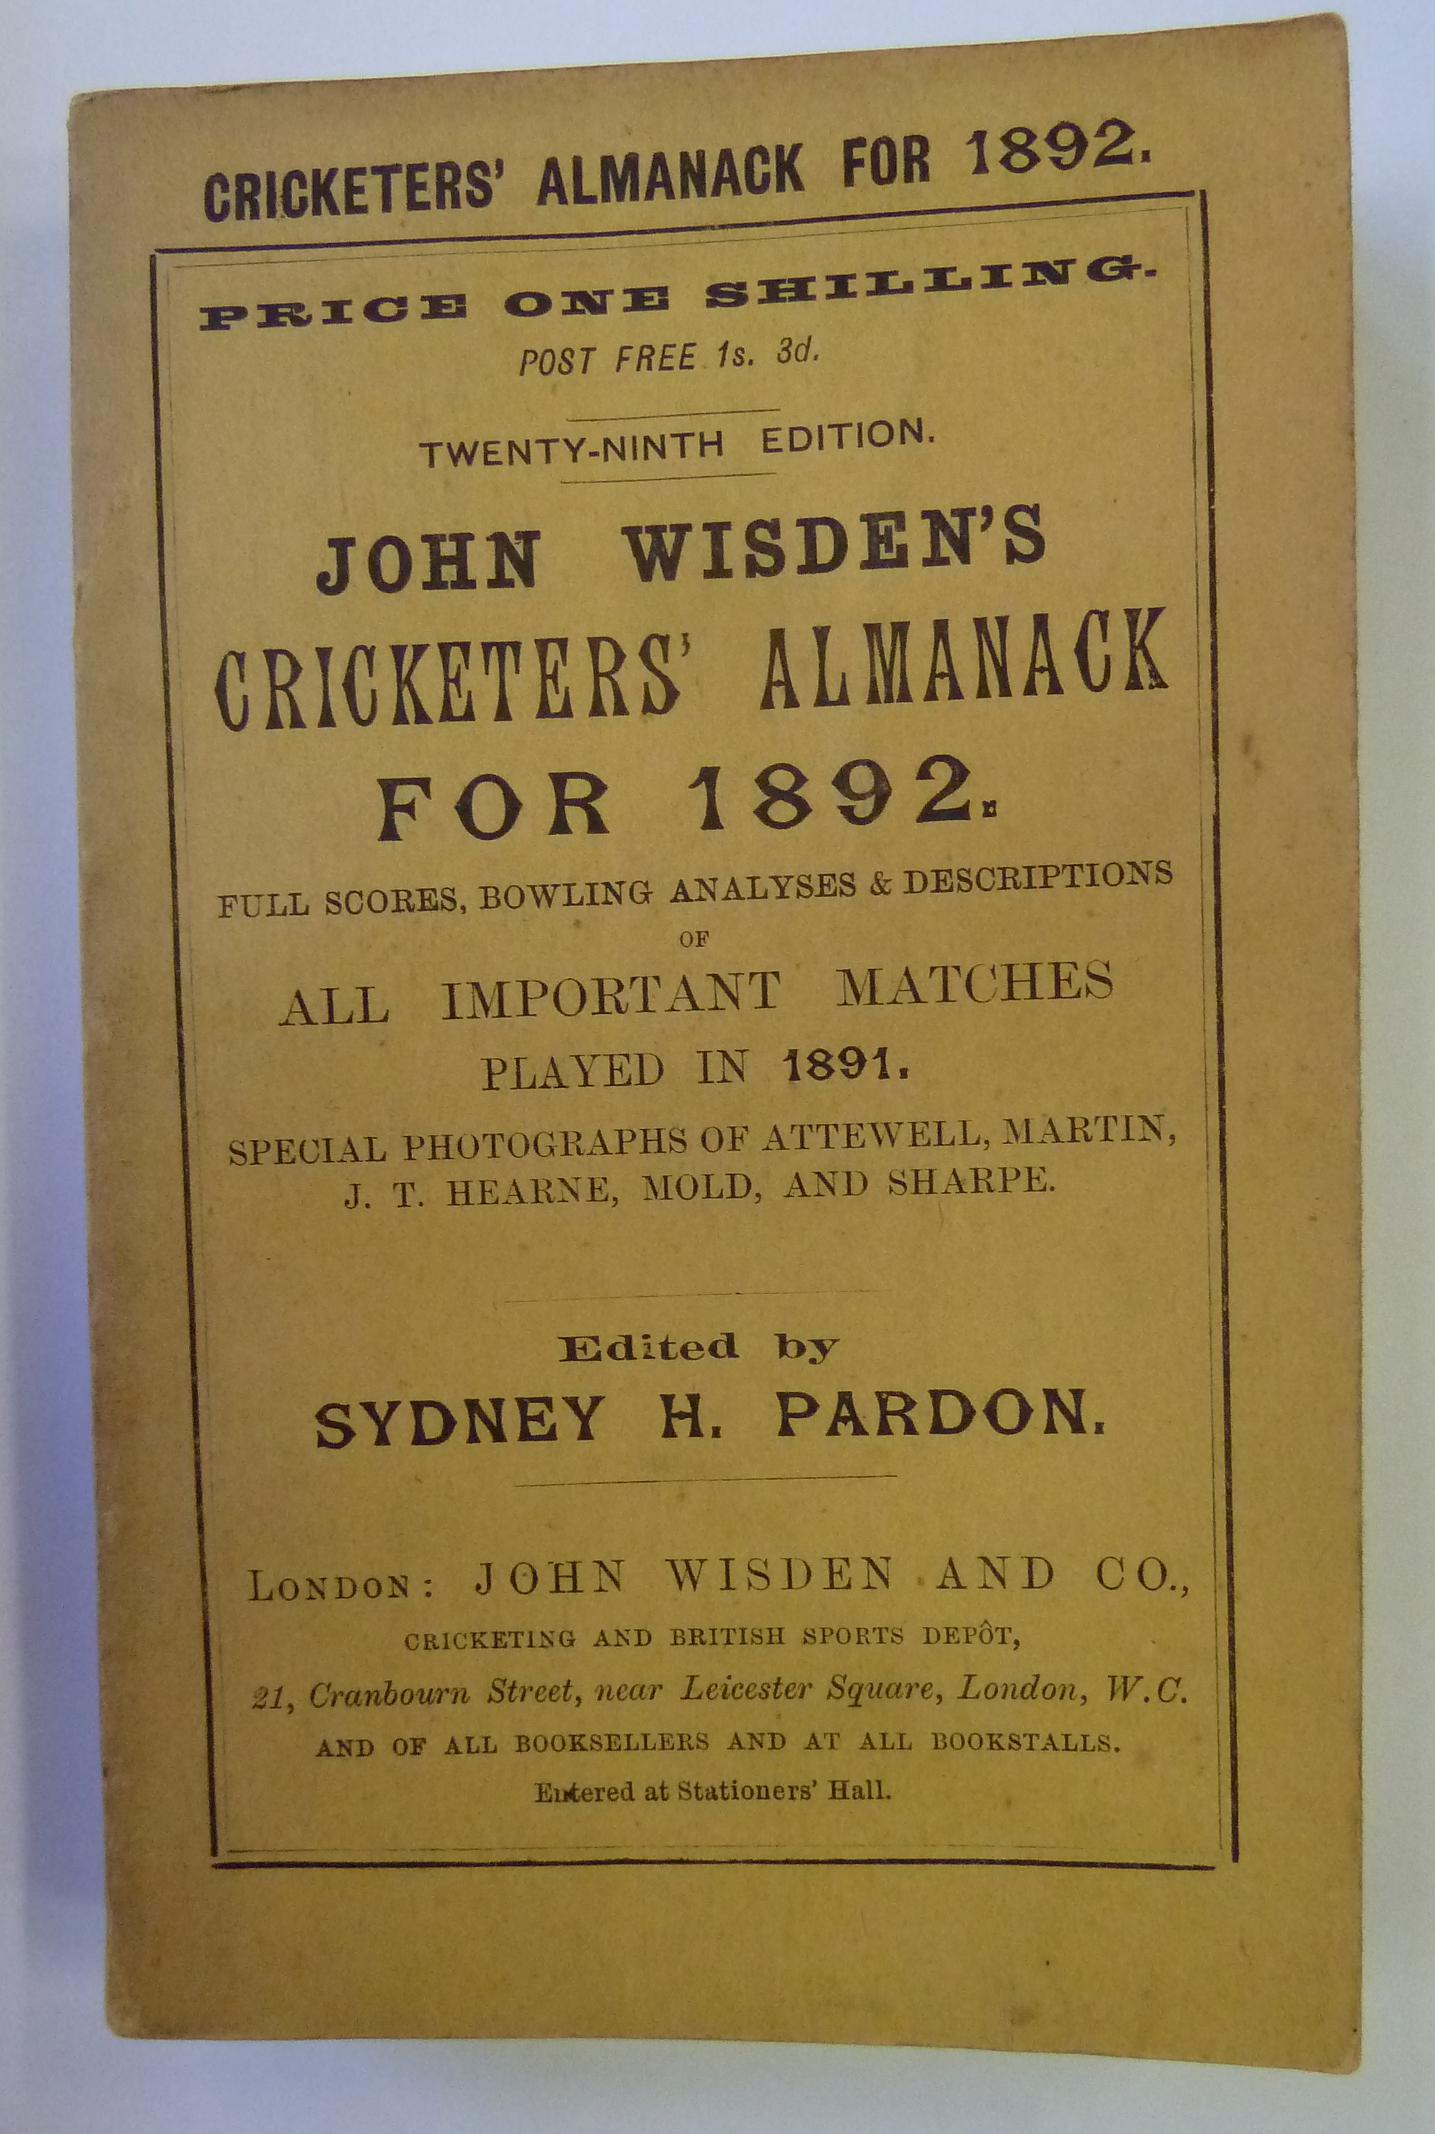 John Wisden's Cricketers' Almanack For 1892